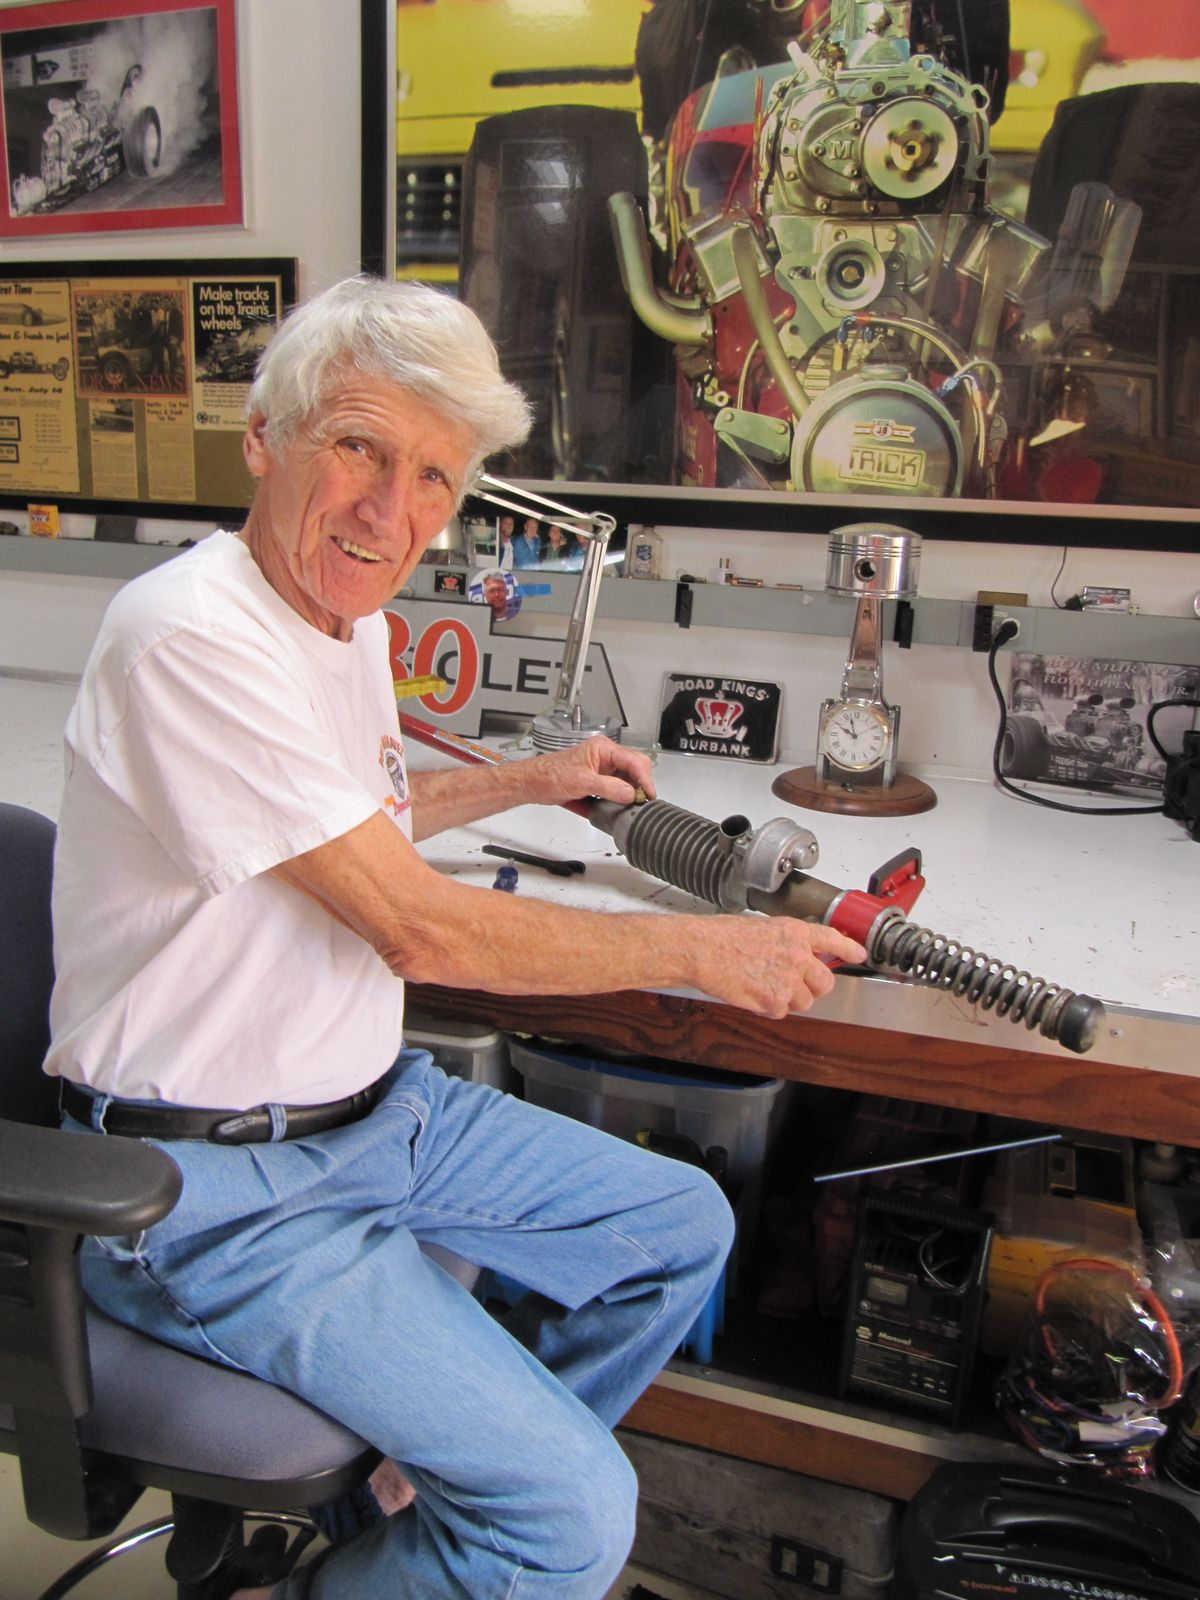 Color photo of Bob Muravez in his garage in 2020 — white hair, white t-shirt, light blue jeans. He is sitting at a work table, showing off a hot rod suspension and smiling.